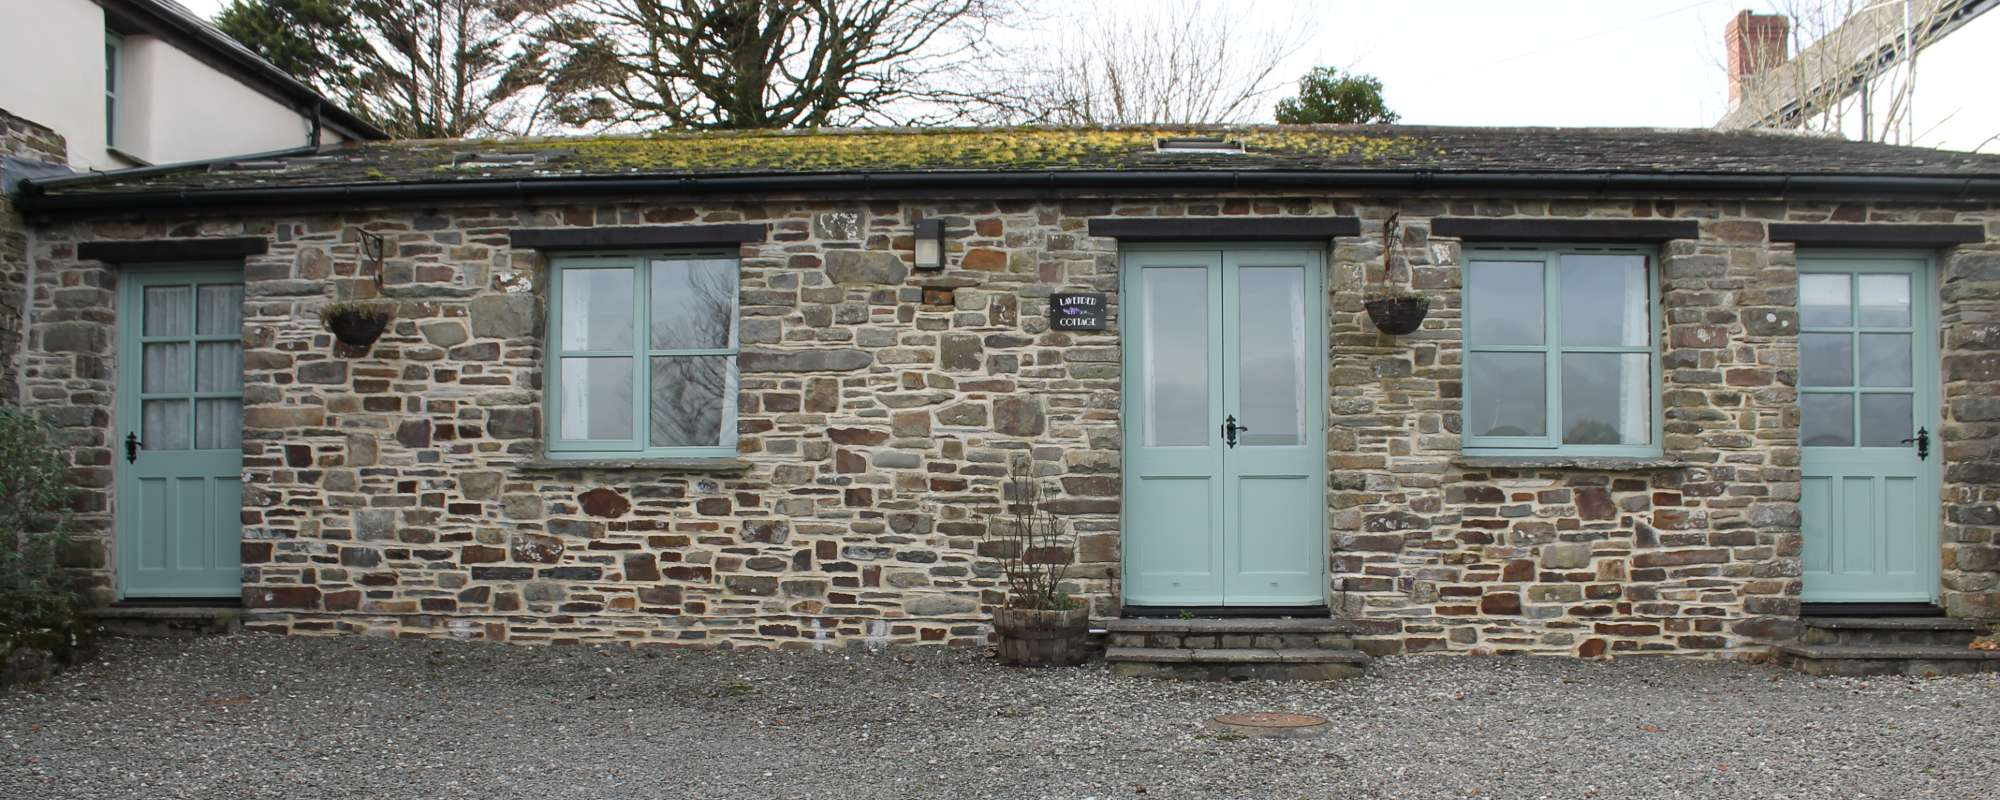 Lavender Holiday Cottage, luxury holiday cottages in Bude